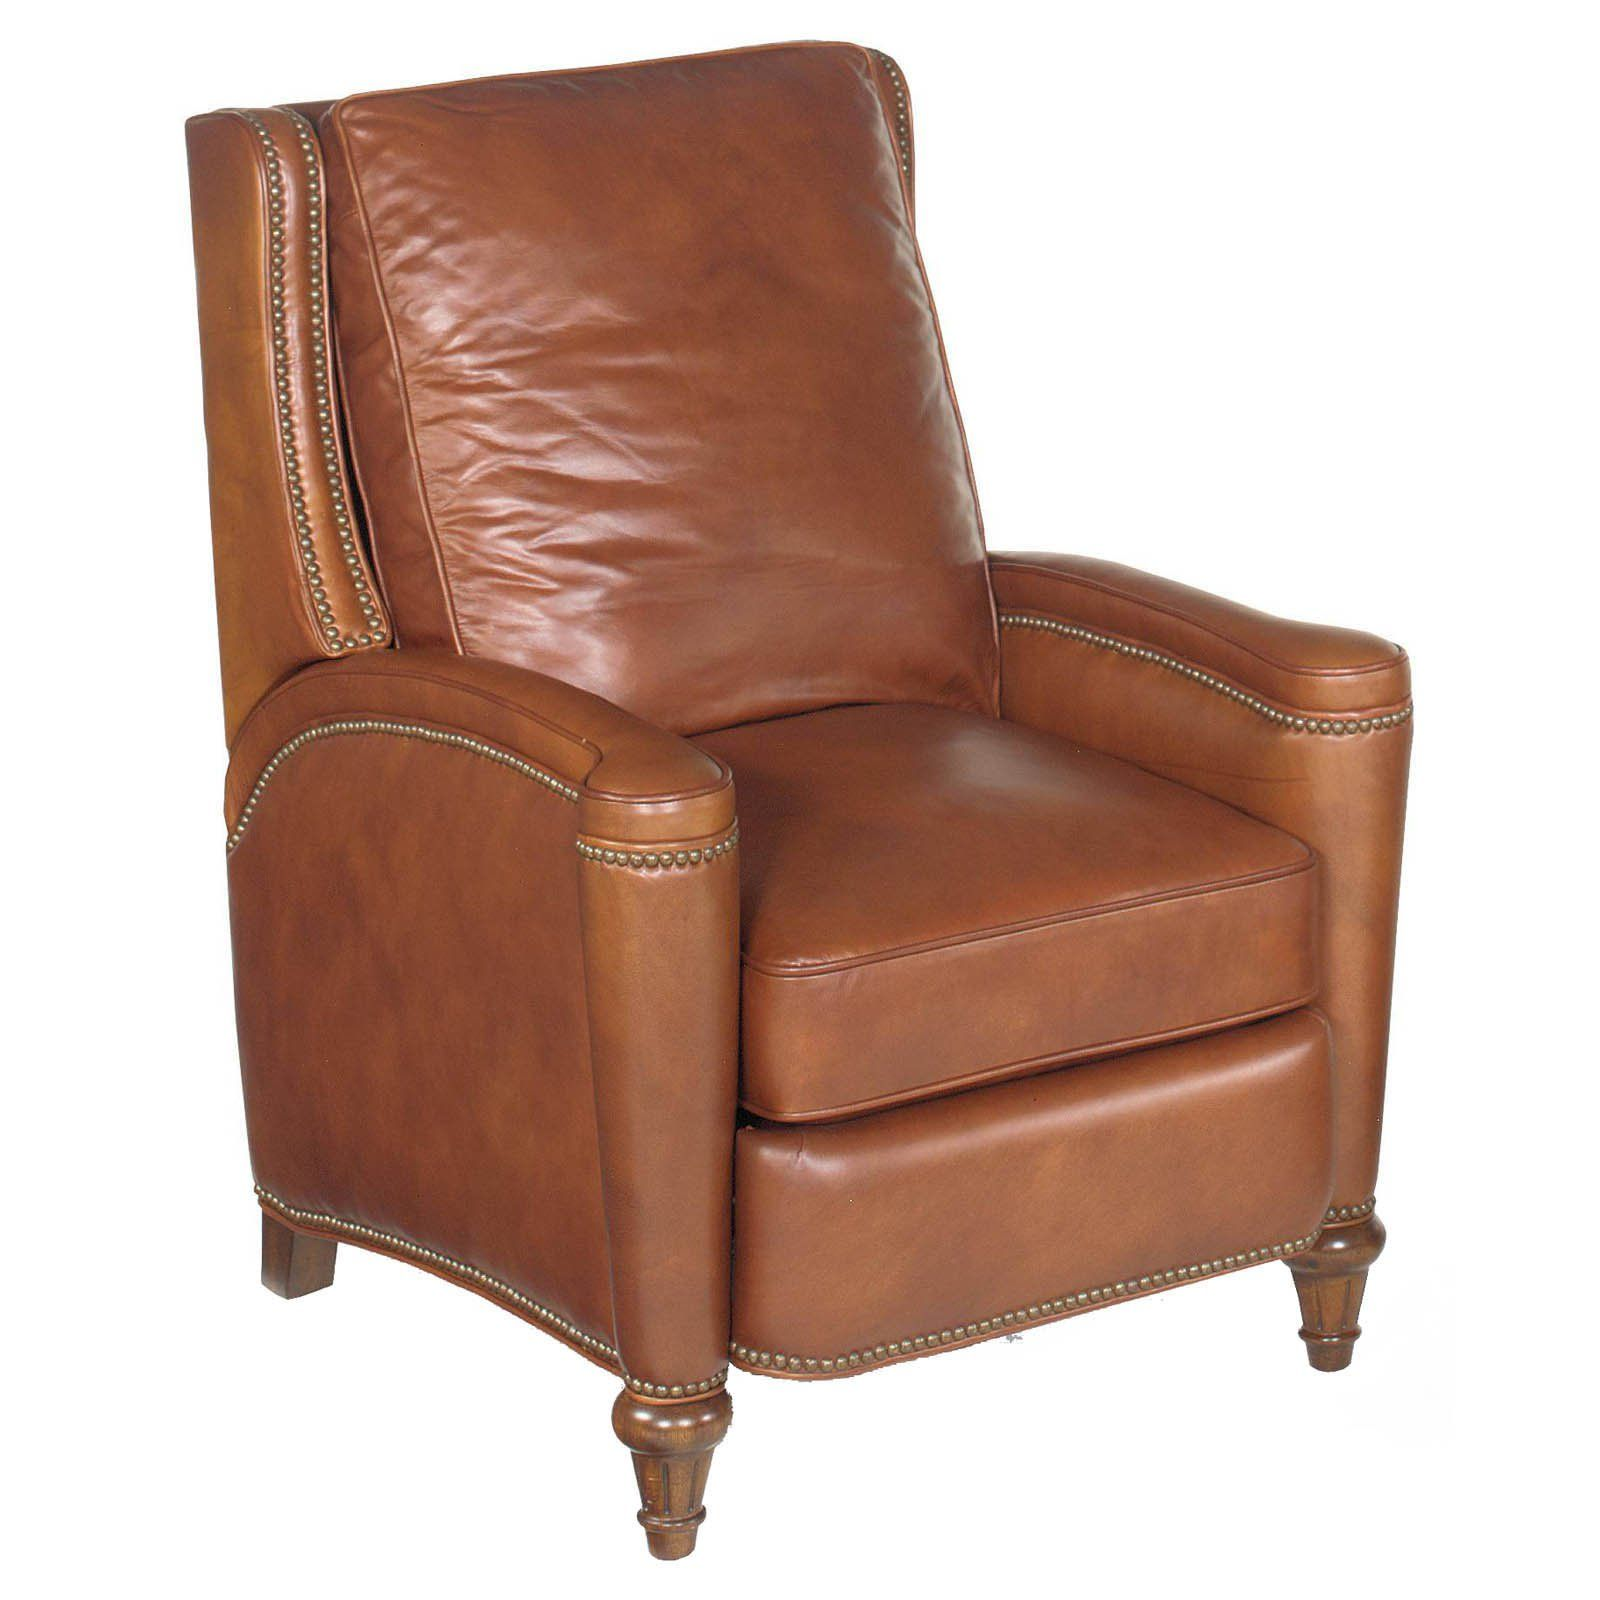 Surprising Hooker Furniture Valencia Recliner Cognac Products In 2019 Evergreenethics Interior Chair Design Evergreenethicsorg